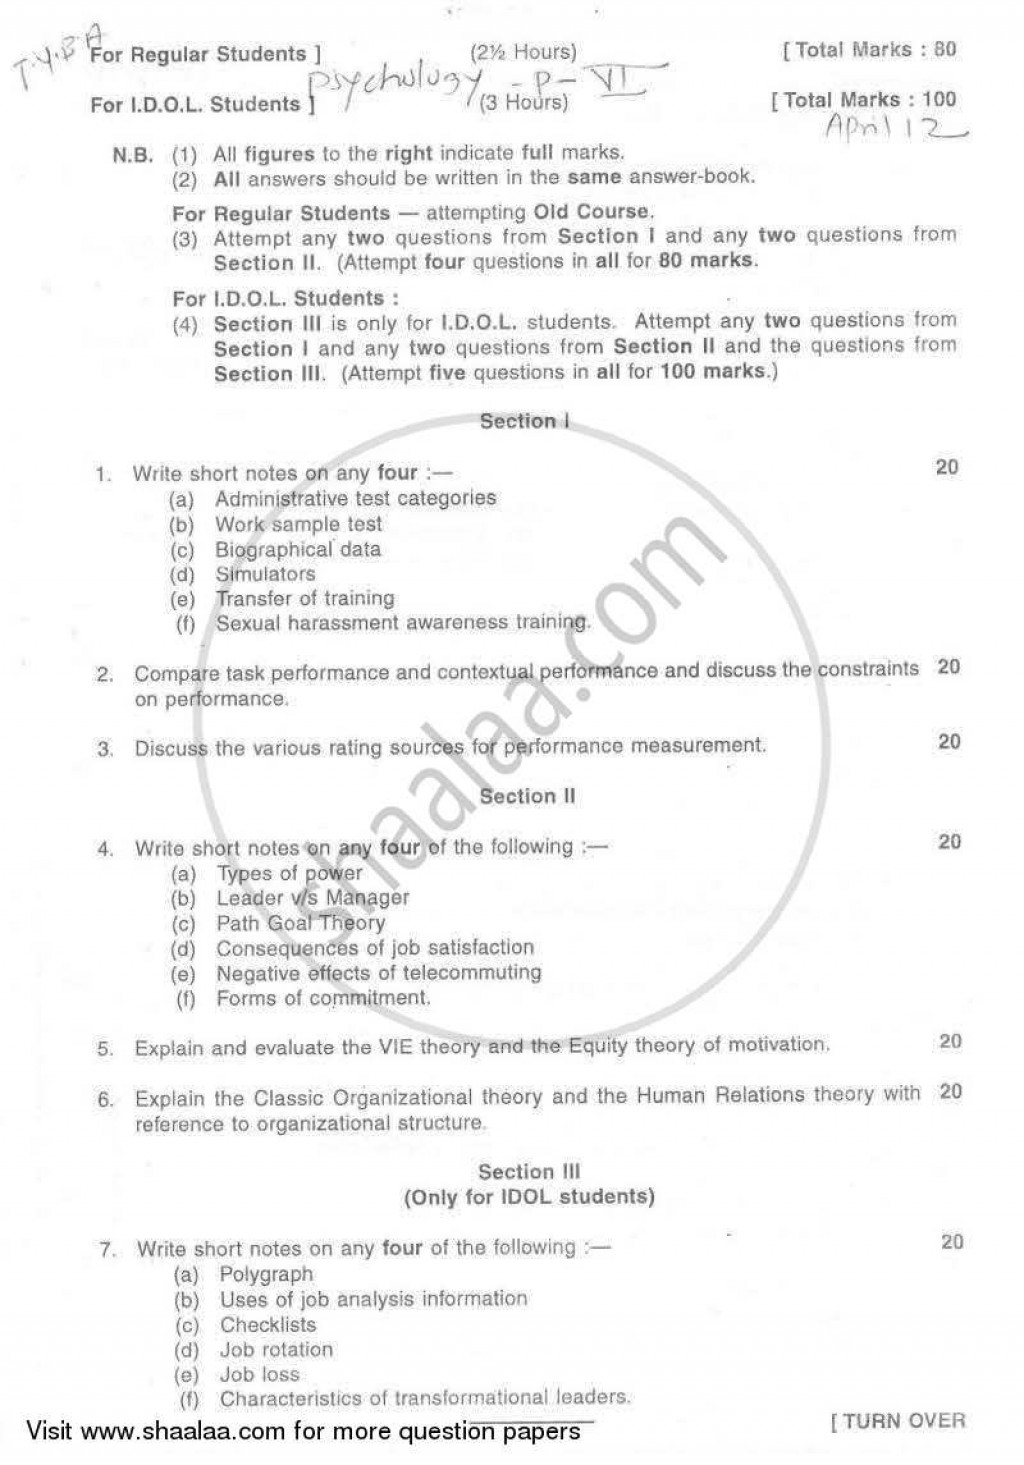 017 Psychologyearch Paper On Dreams University Of Mumbai Bachelor Industrial Organizational T Y Yearly Pattern Semester Tyba 2011 29a03925dfc524f2aa4cb10e4d3da996a Singular Psychology Research Articles 2018 Topics Large